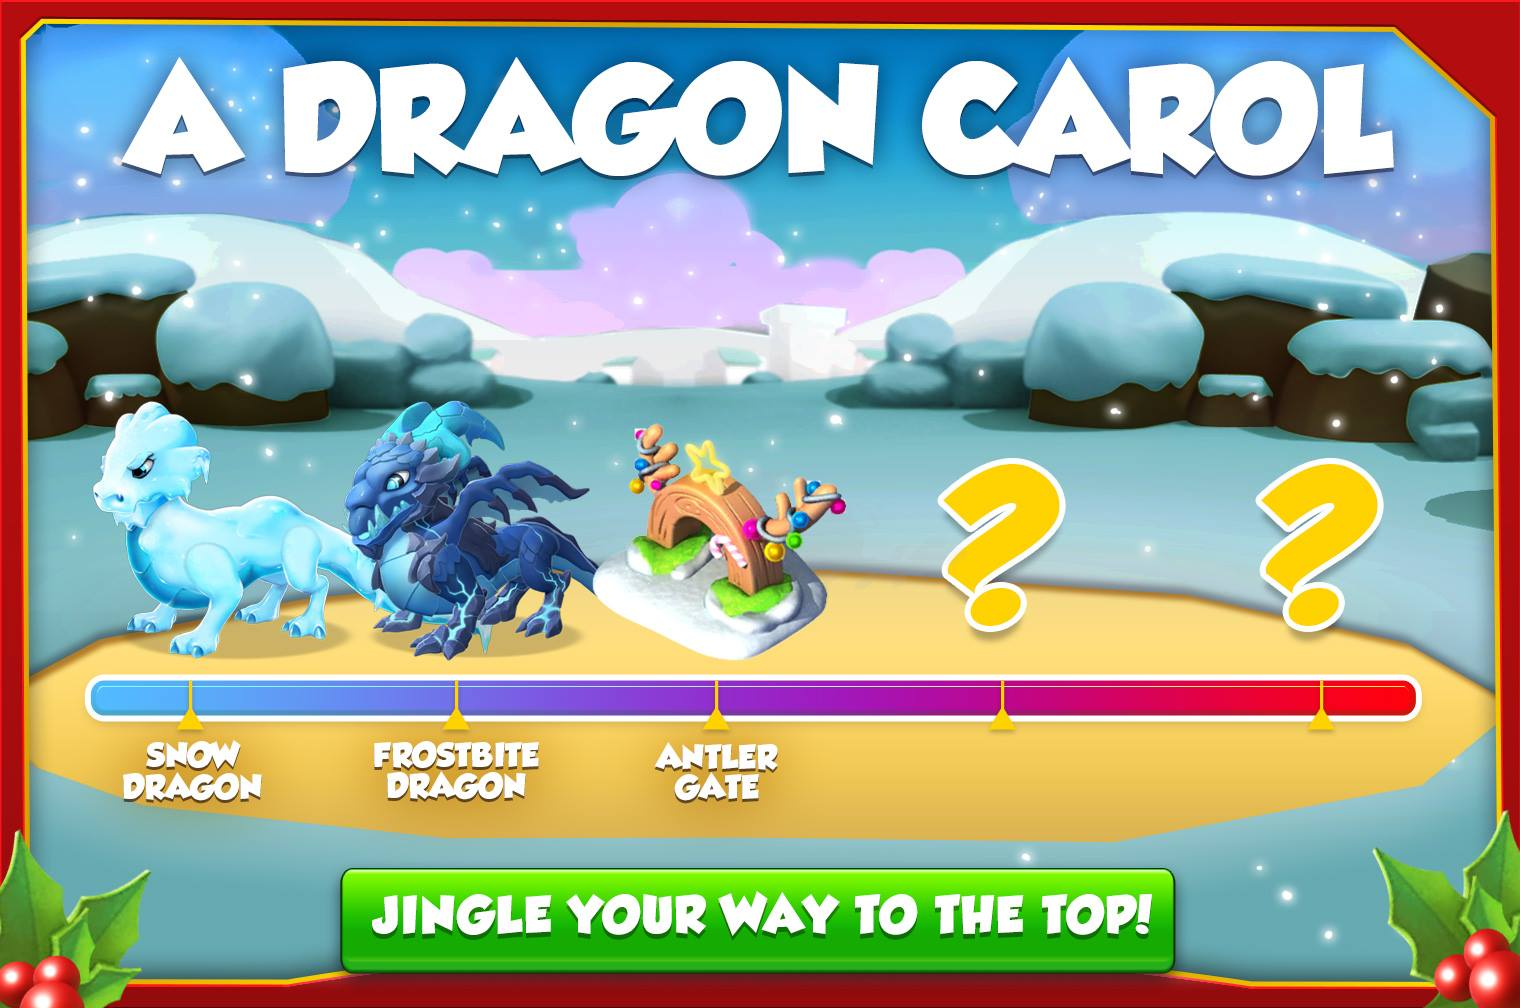 a-dragon-carol-event-teaser